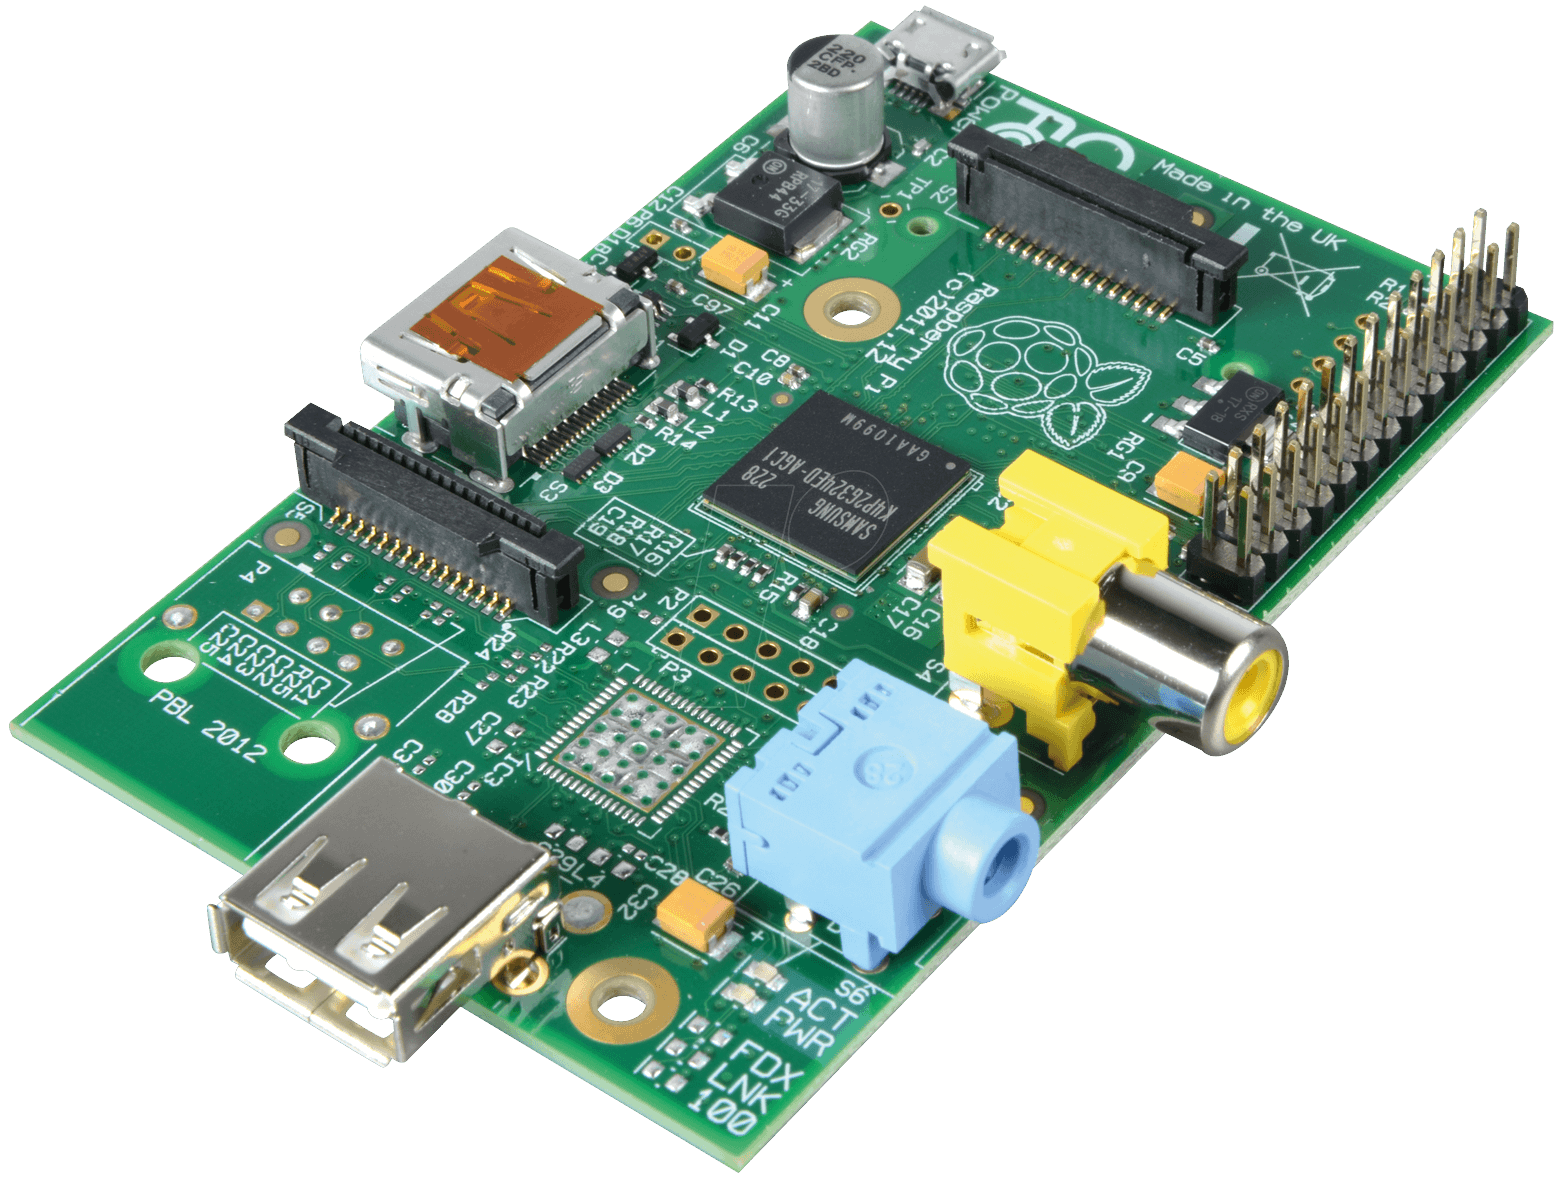 It's similar to a Raspberry Pi (above), but a bit less complicated.